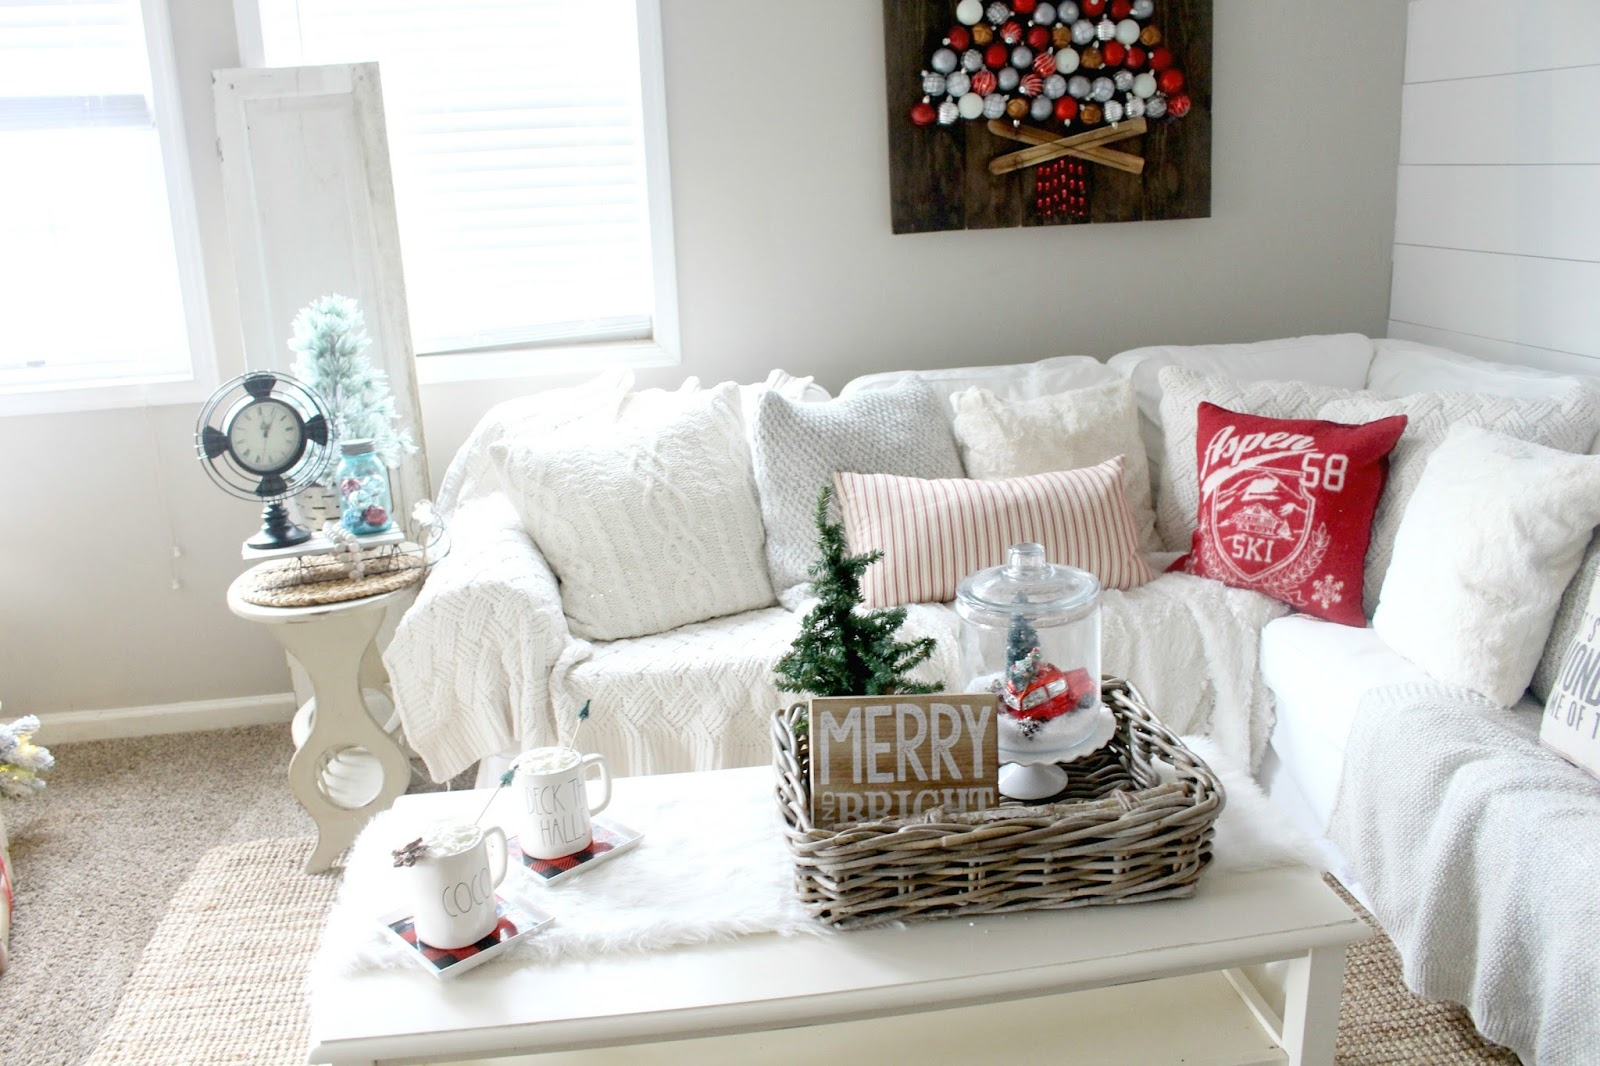 How To Decorate with Target Dollar Spot Decor - The Glam Farmhouse